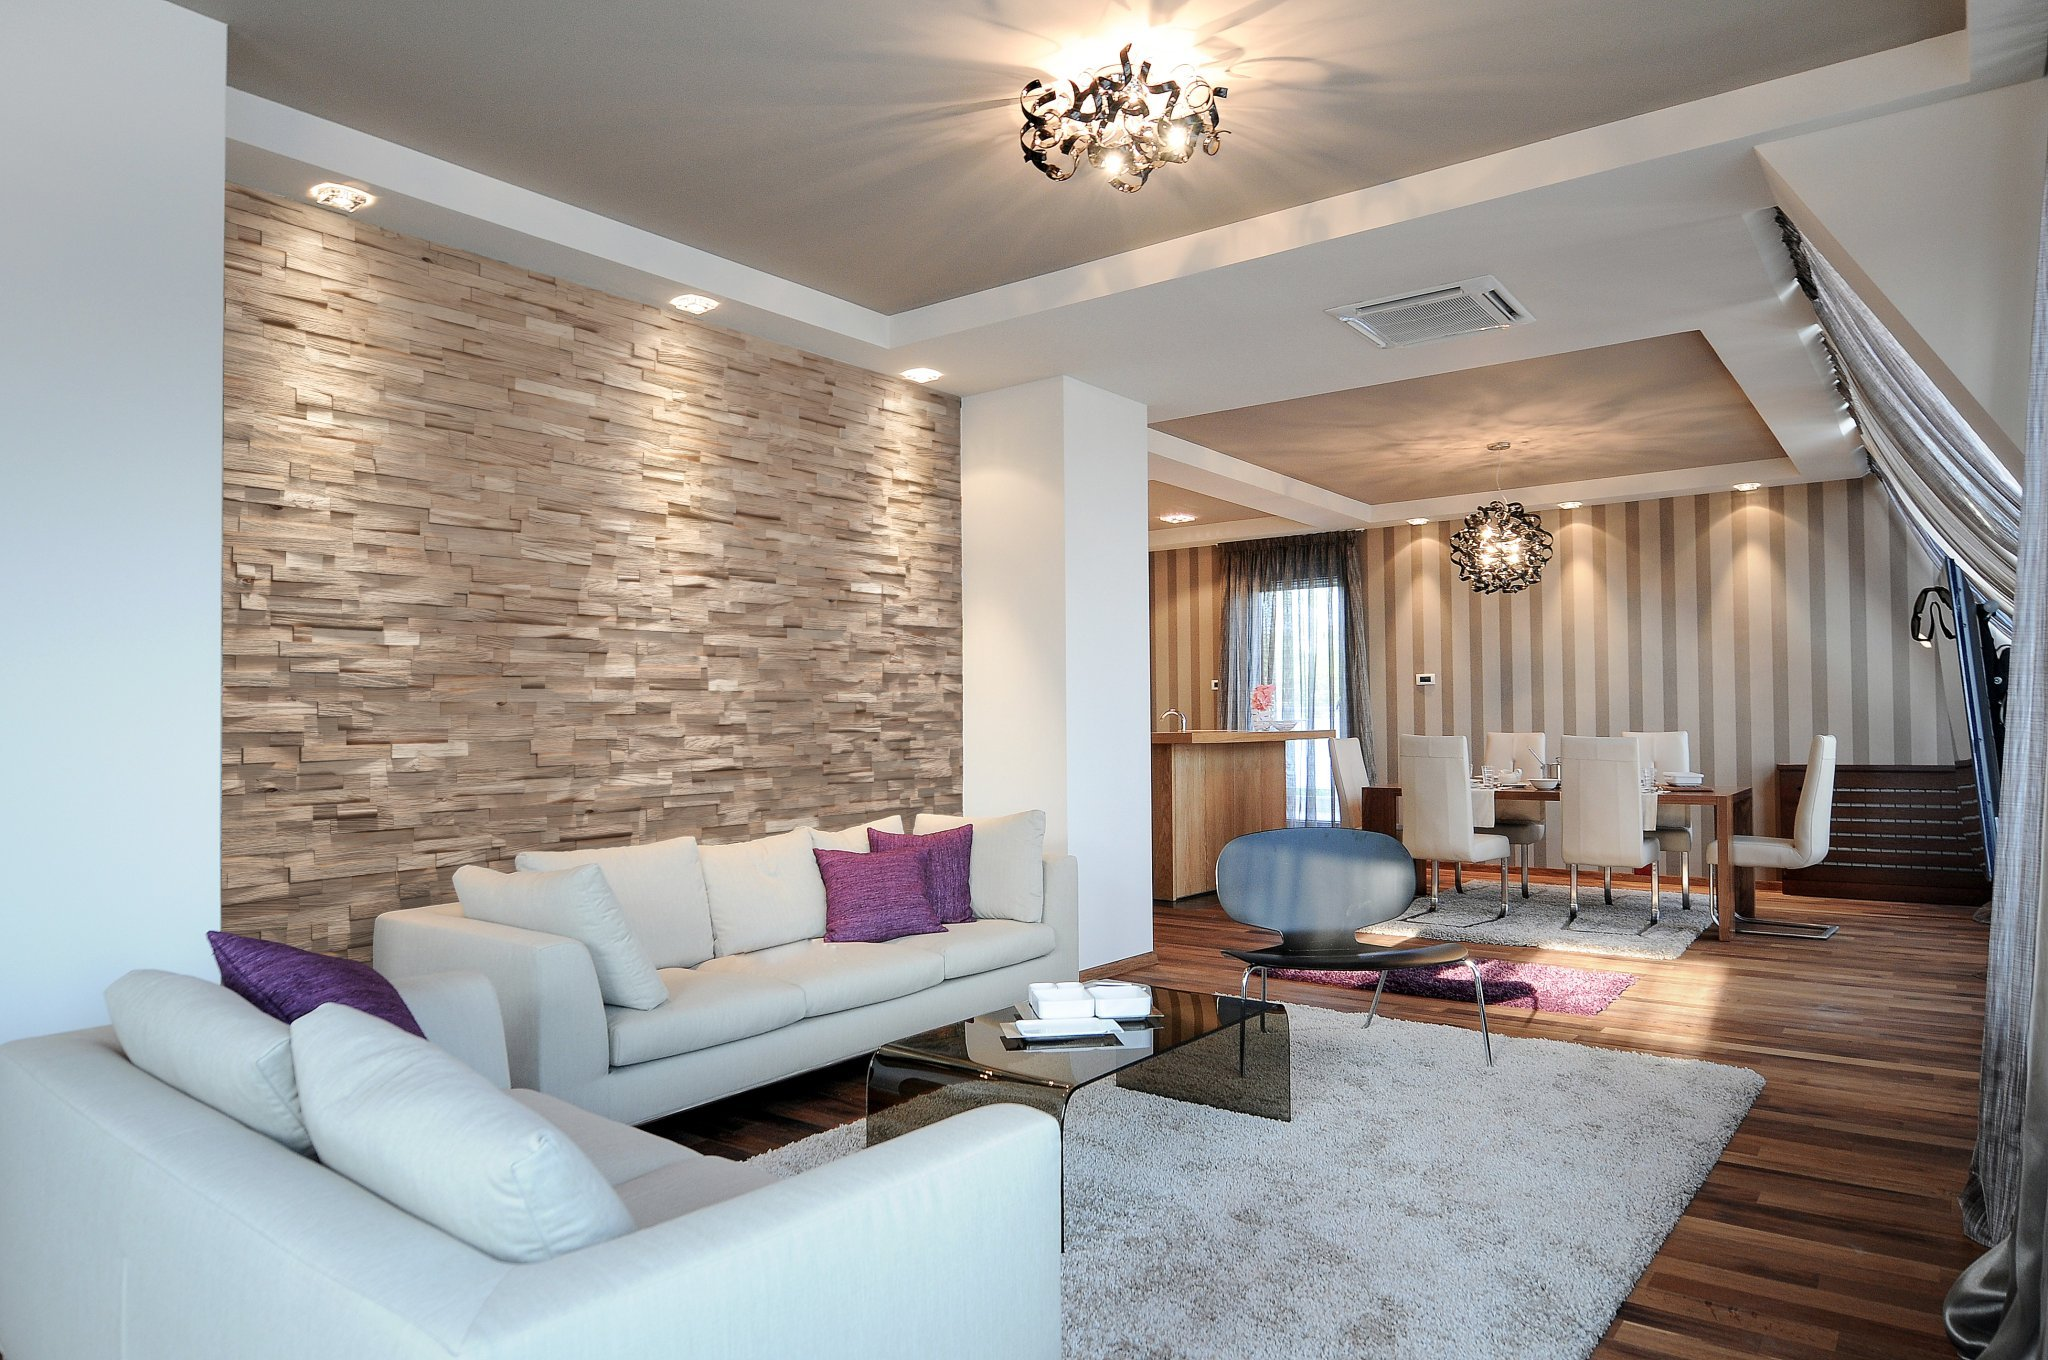 wooden_decorative_wall_cladding_room_shot